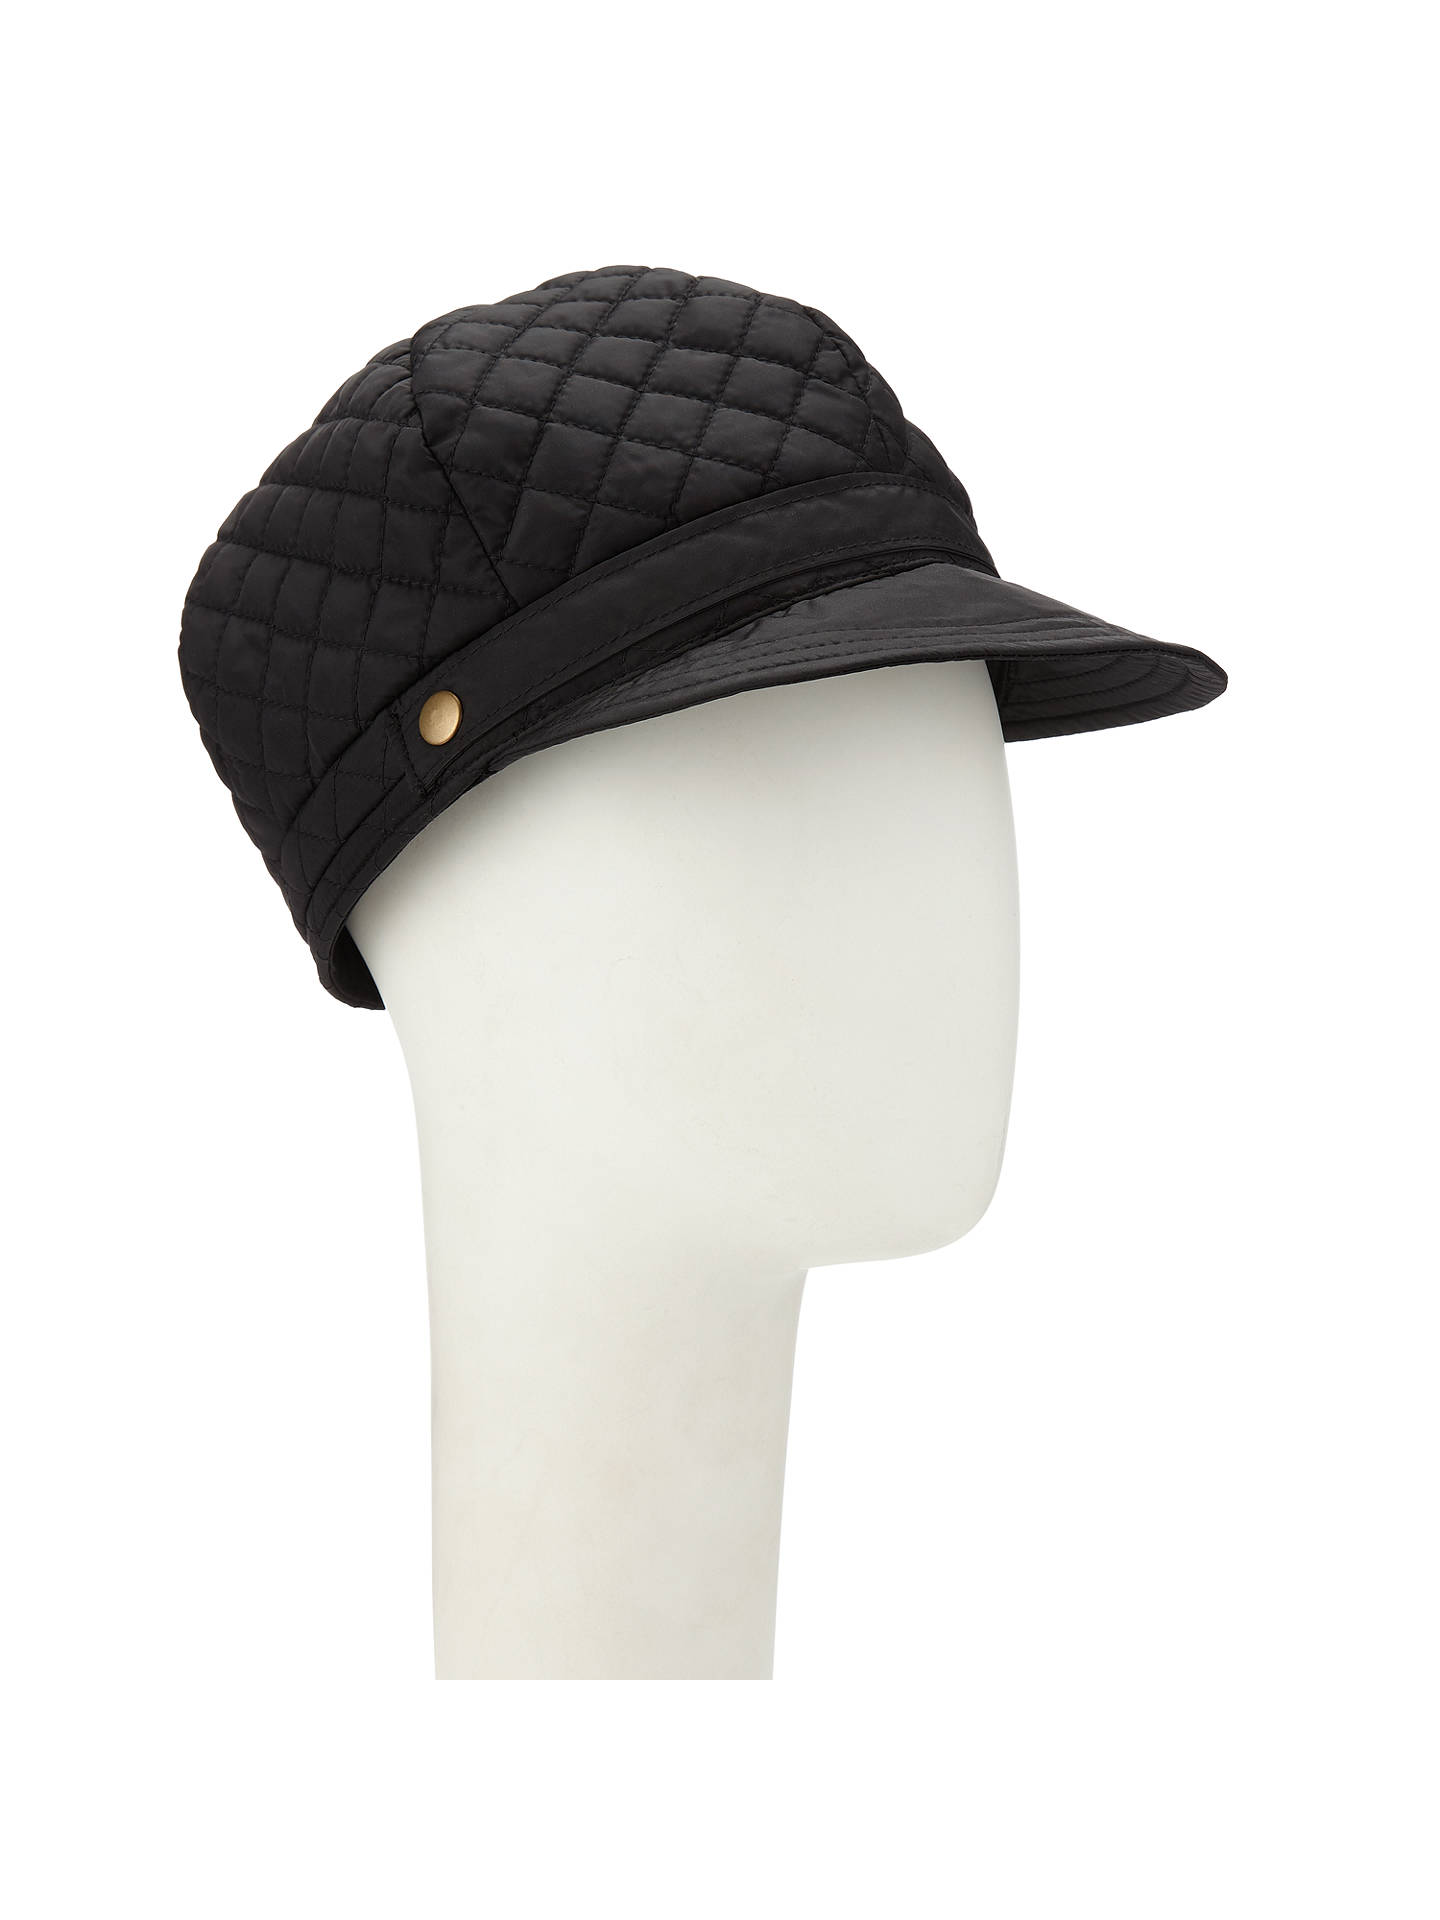 296a915b3dad3 Buy John Lewis   Partners Quilted Baker Boy Cap